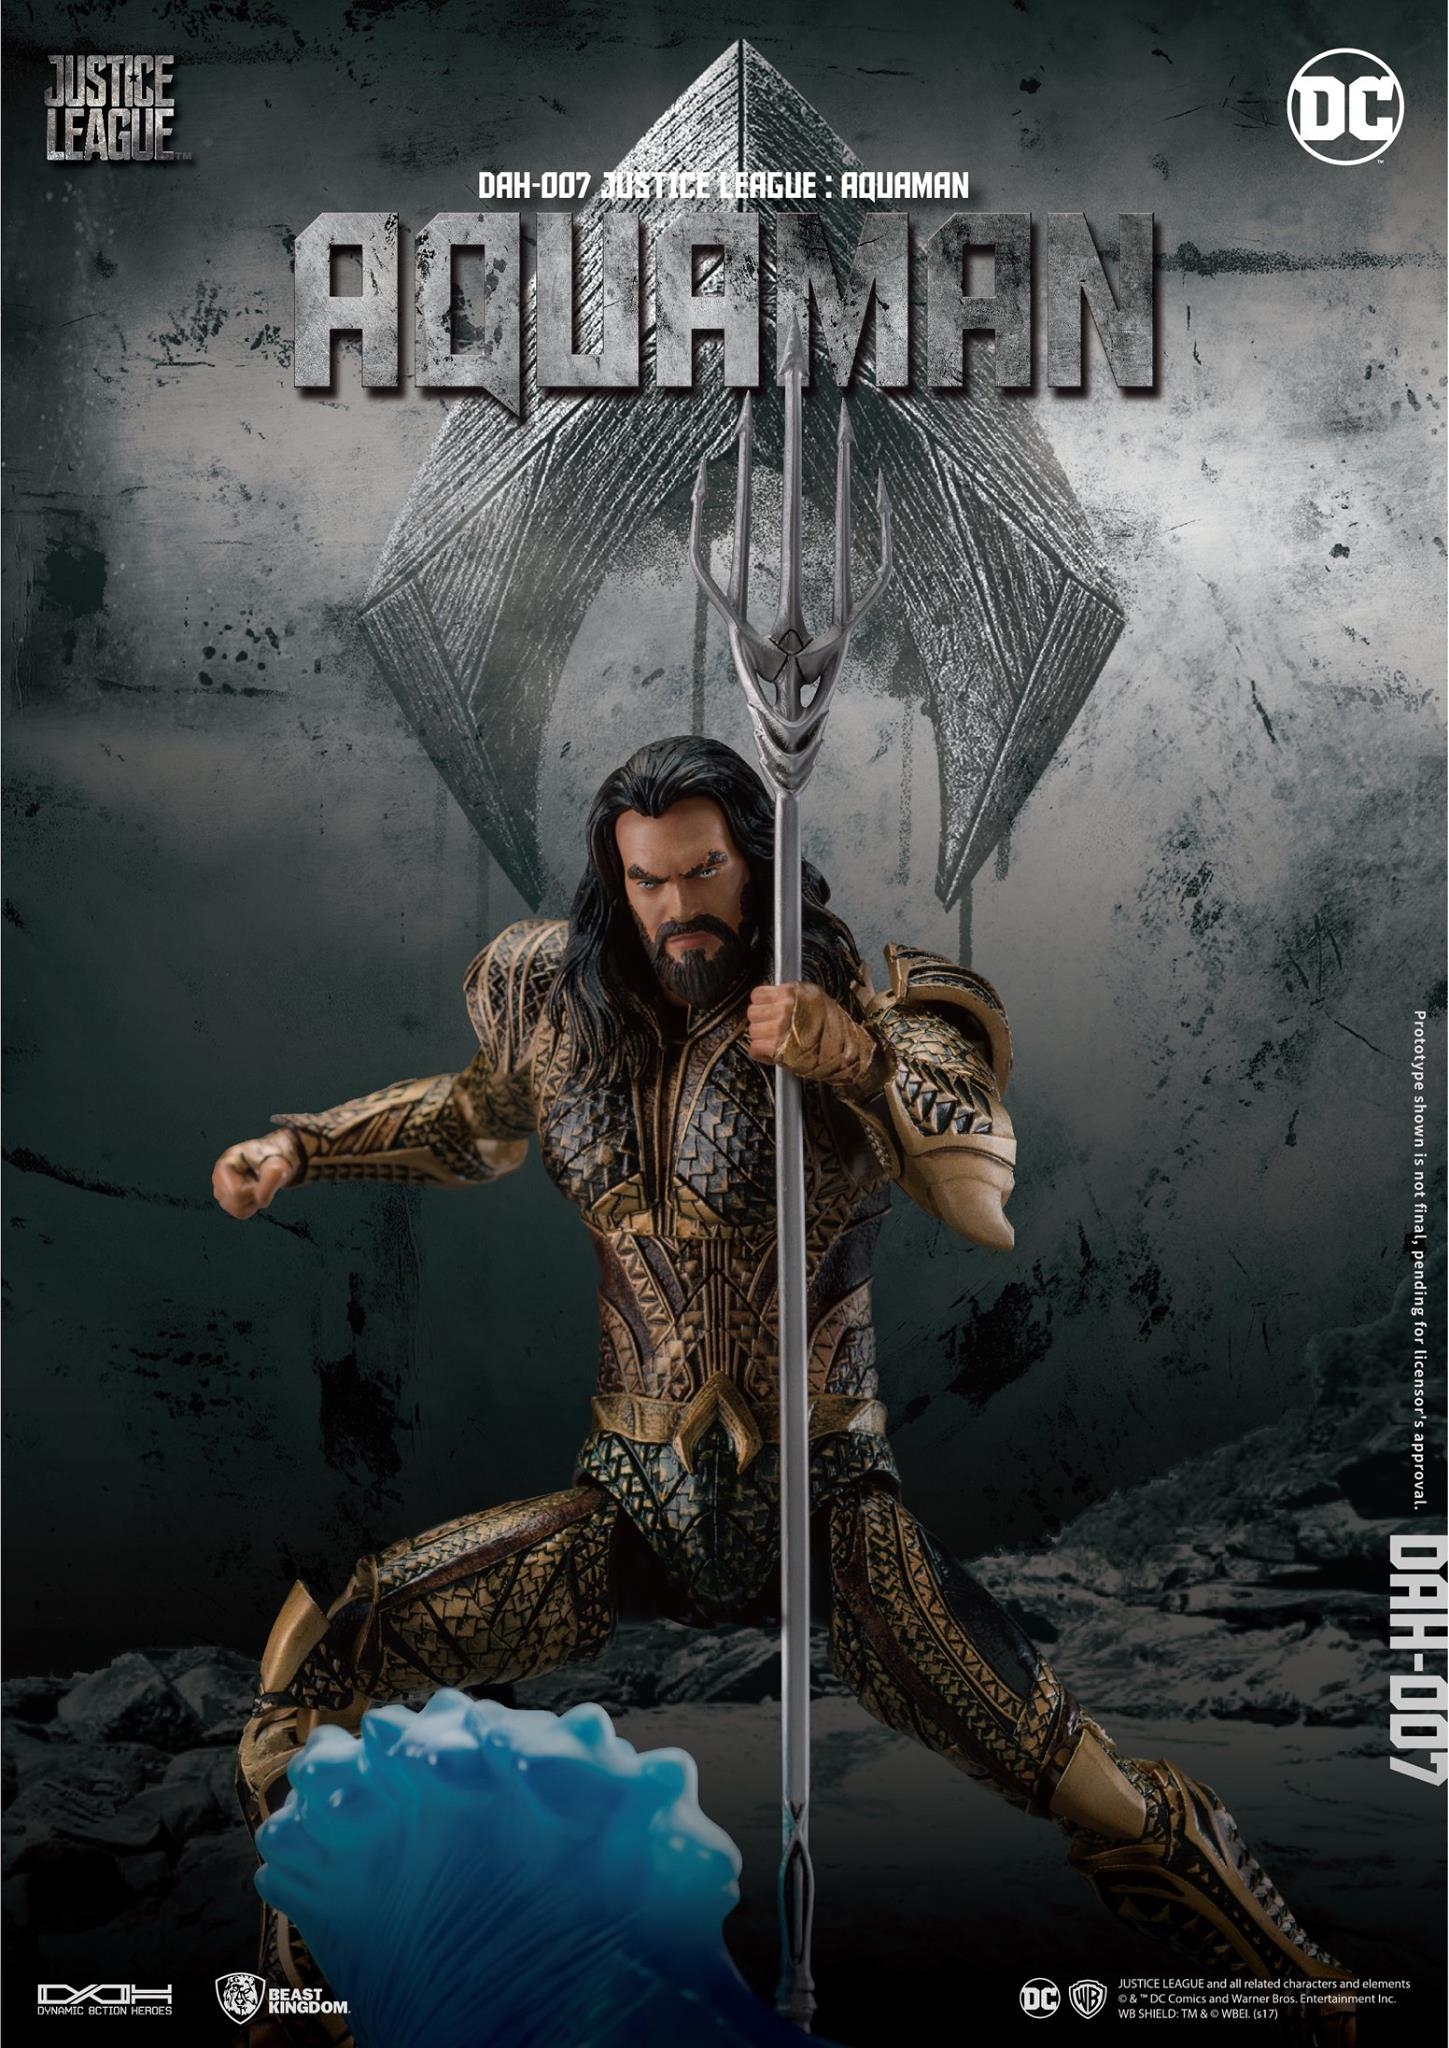 DAH-Justice-League-Aquaman-002